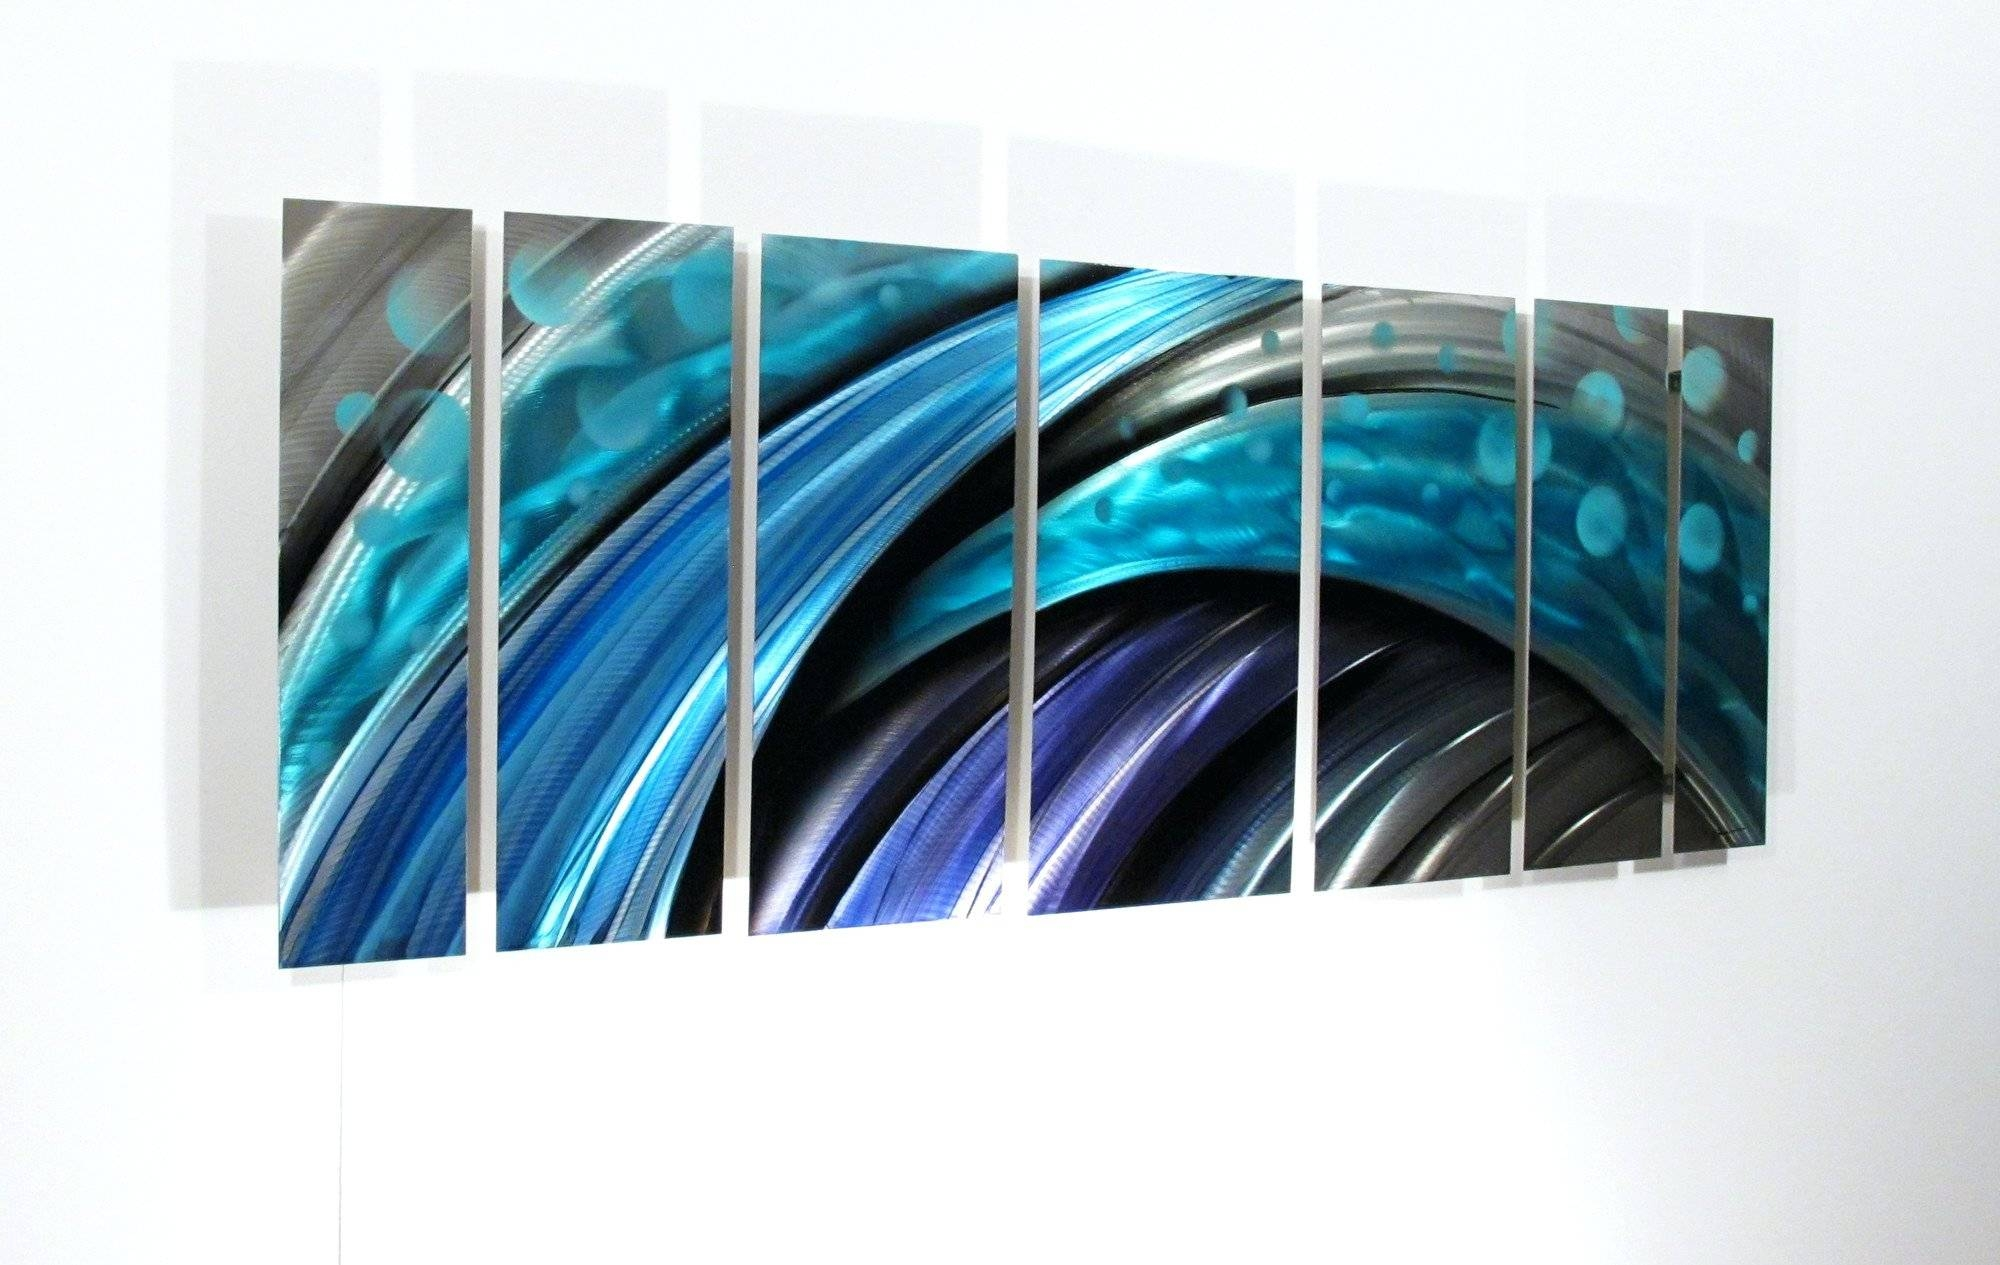 Wall Arts ~ Extra Large Metal Wall Art Abstract Metal Wall Art Inside 2017 Extra Large Metal Wall Art (View 12 of 20)